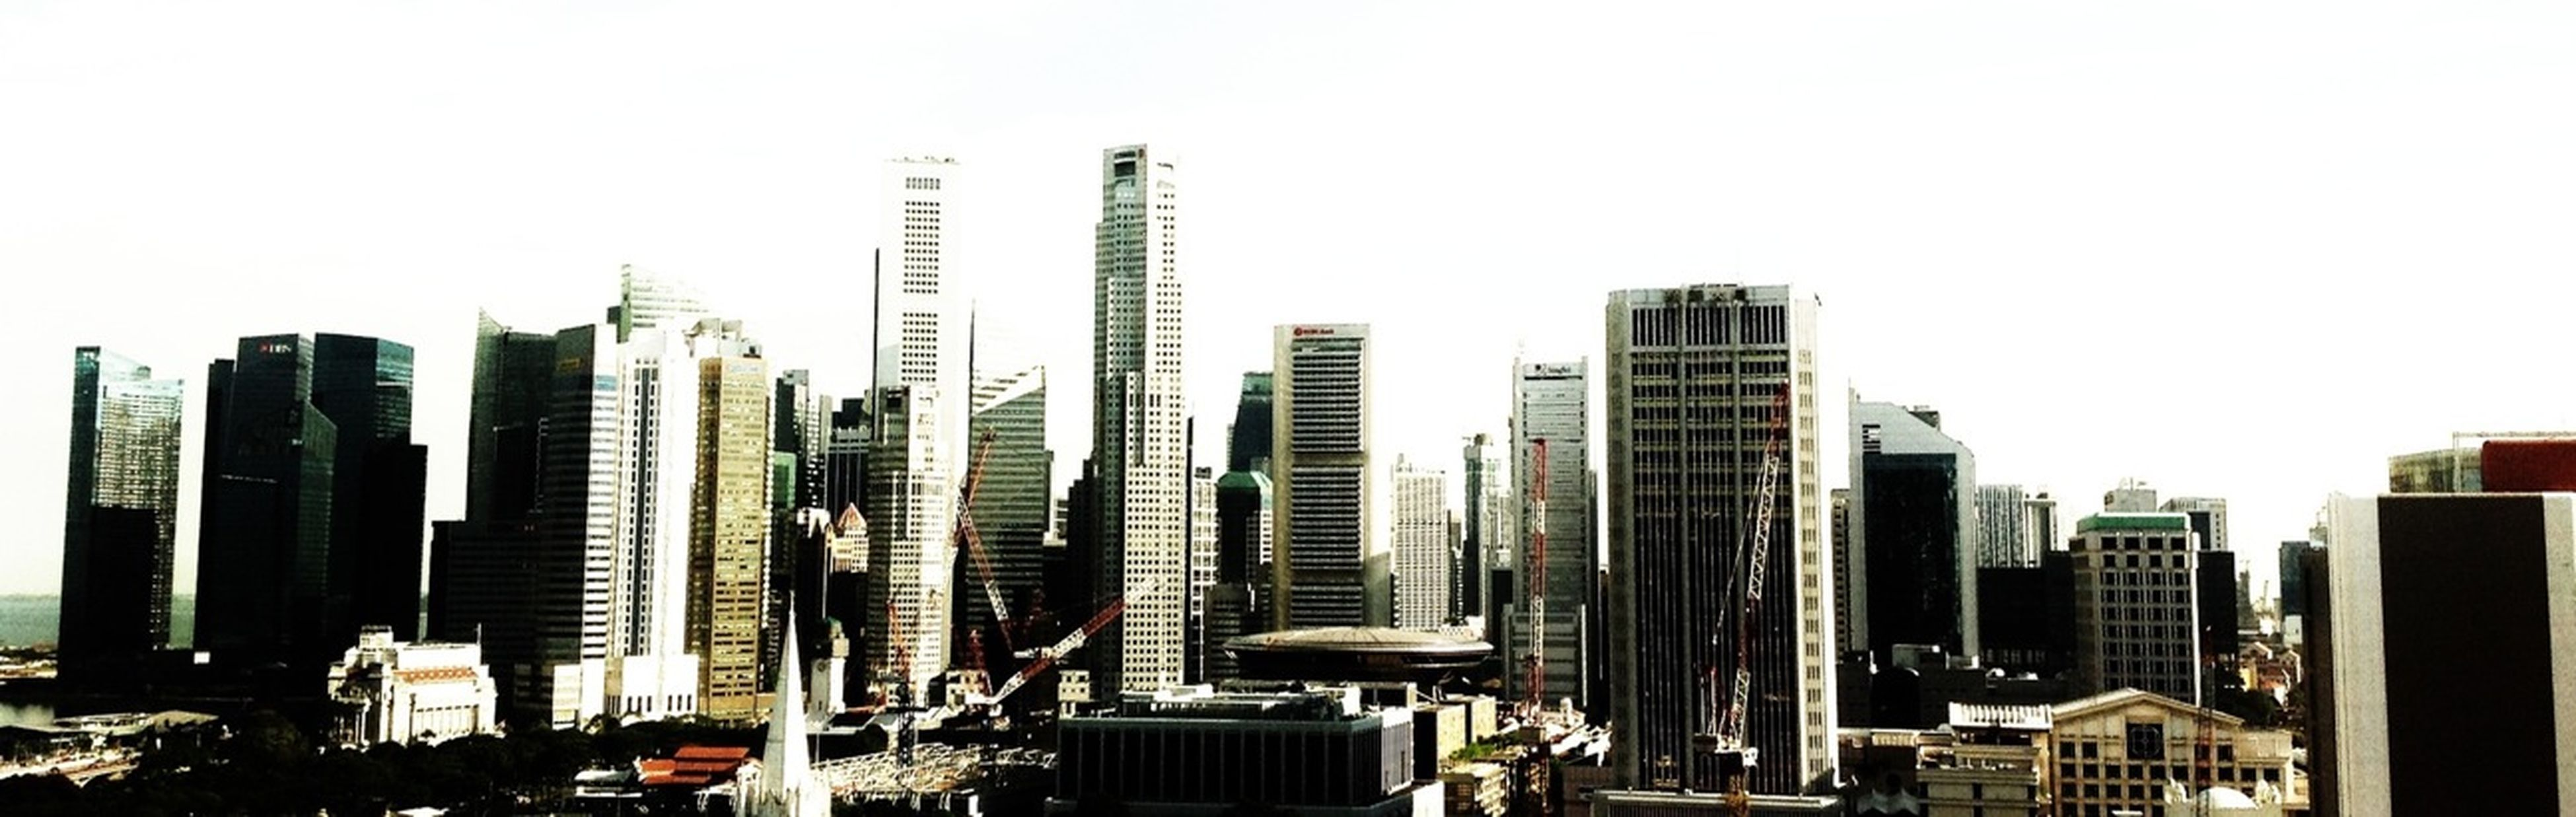 building exterior, skyscraper, city, architecture, built structure, tall - high, clear sky, modern, cityscape, office building, tower, urban skyline, development, financial district, tall, copy space, crowded, city life, building, capital cities